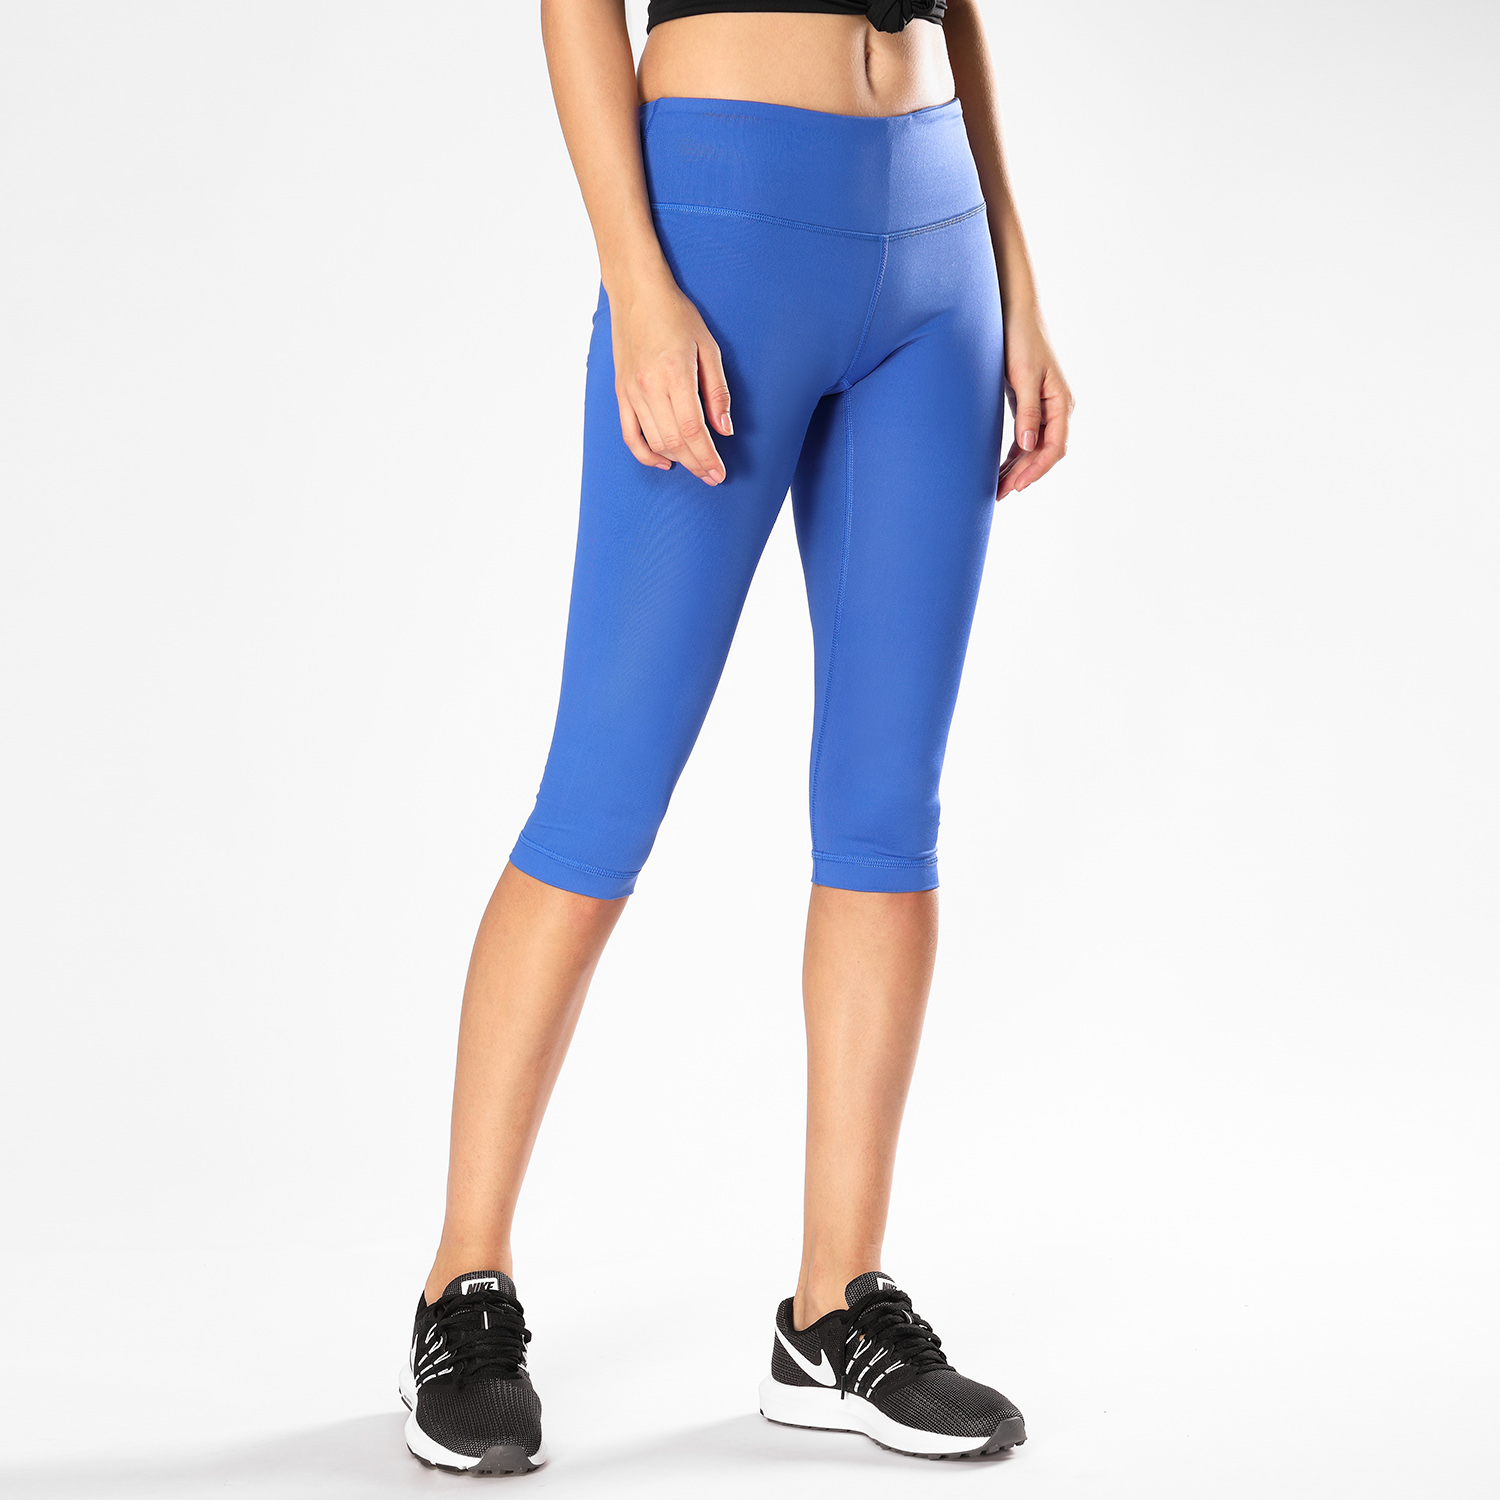 CRZ YOGA Women's Workout Tights with Pockets Running Capris Yoga Pants